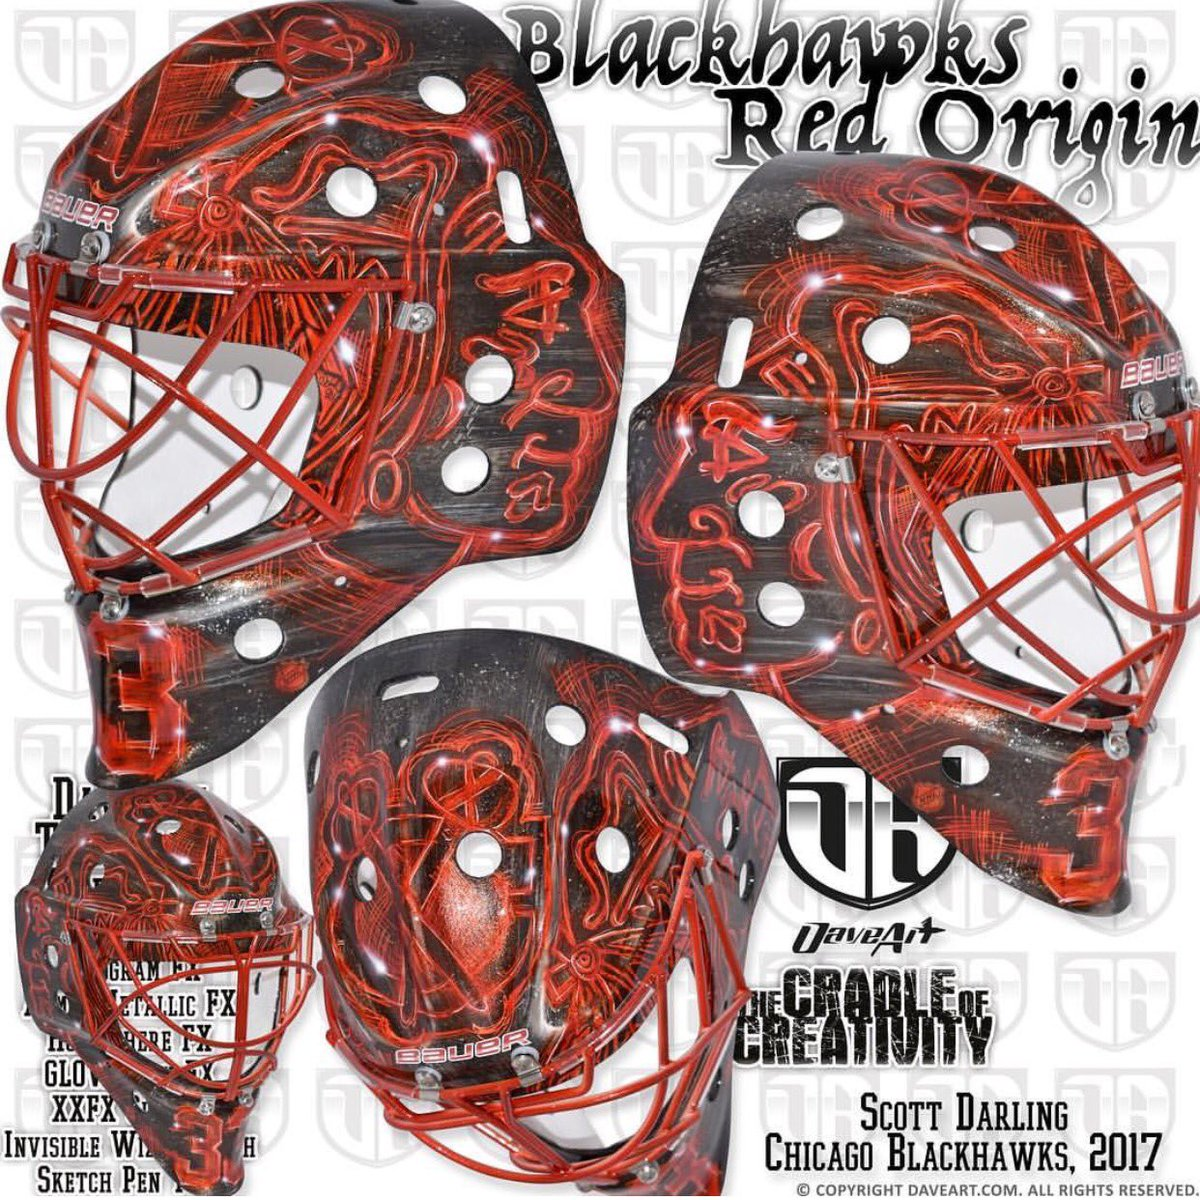 I love goalies scott darling 2016 17 mask darling started wearing this mask in march the blackhawks logo but in a red sketch style maxwellsz